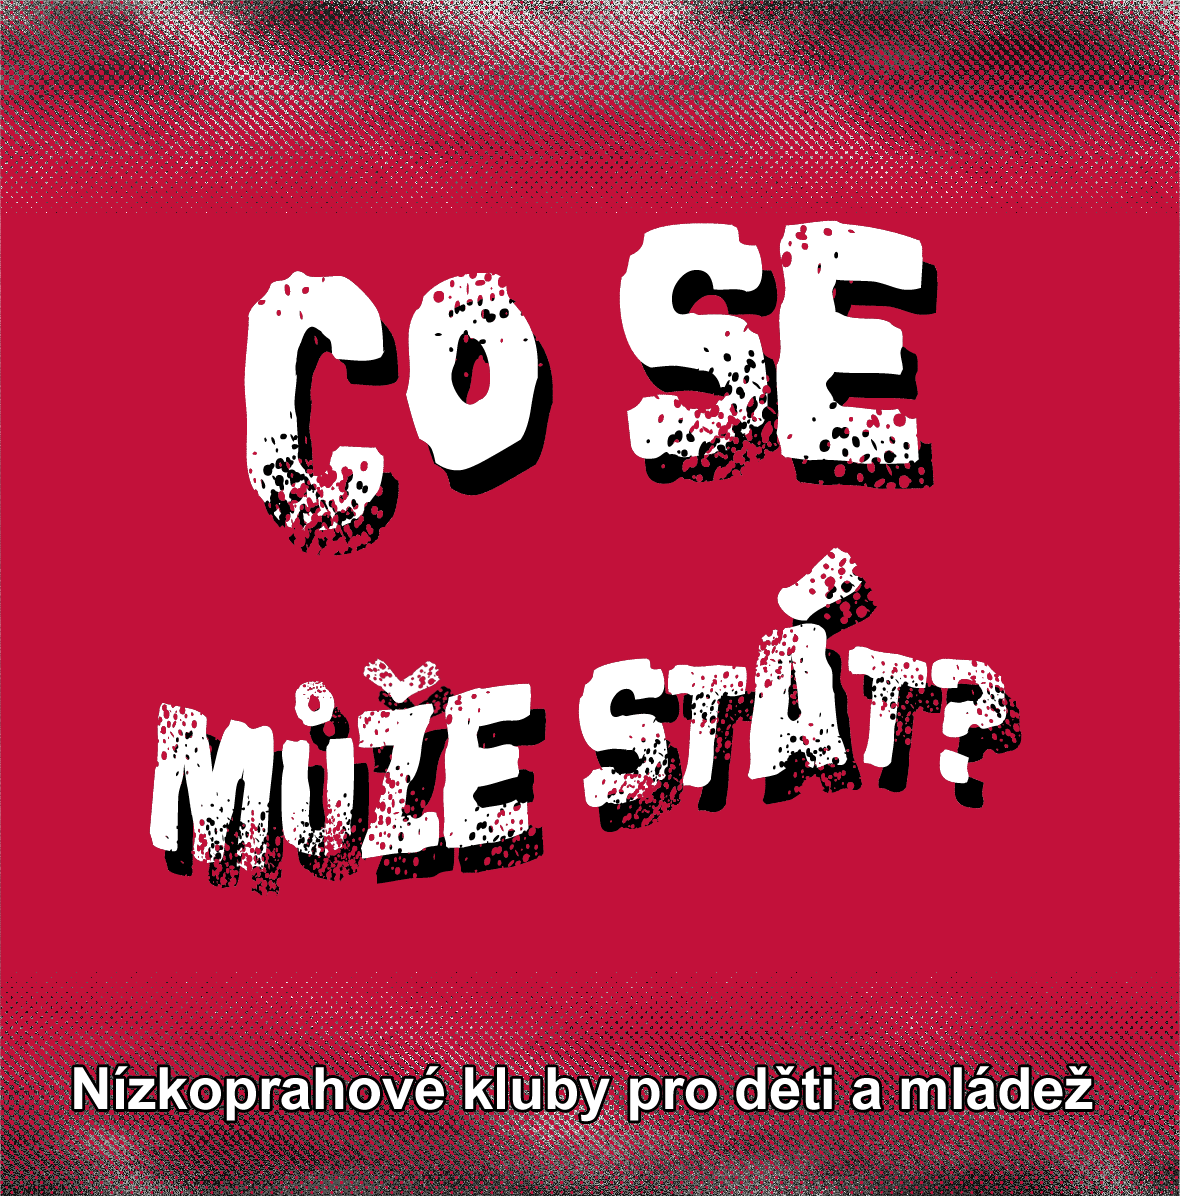 Co_se_muze_stat